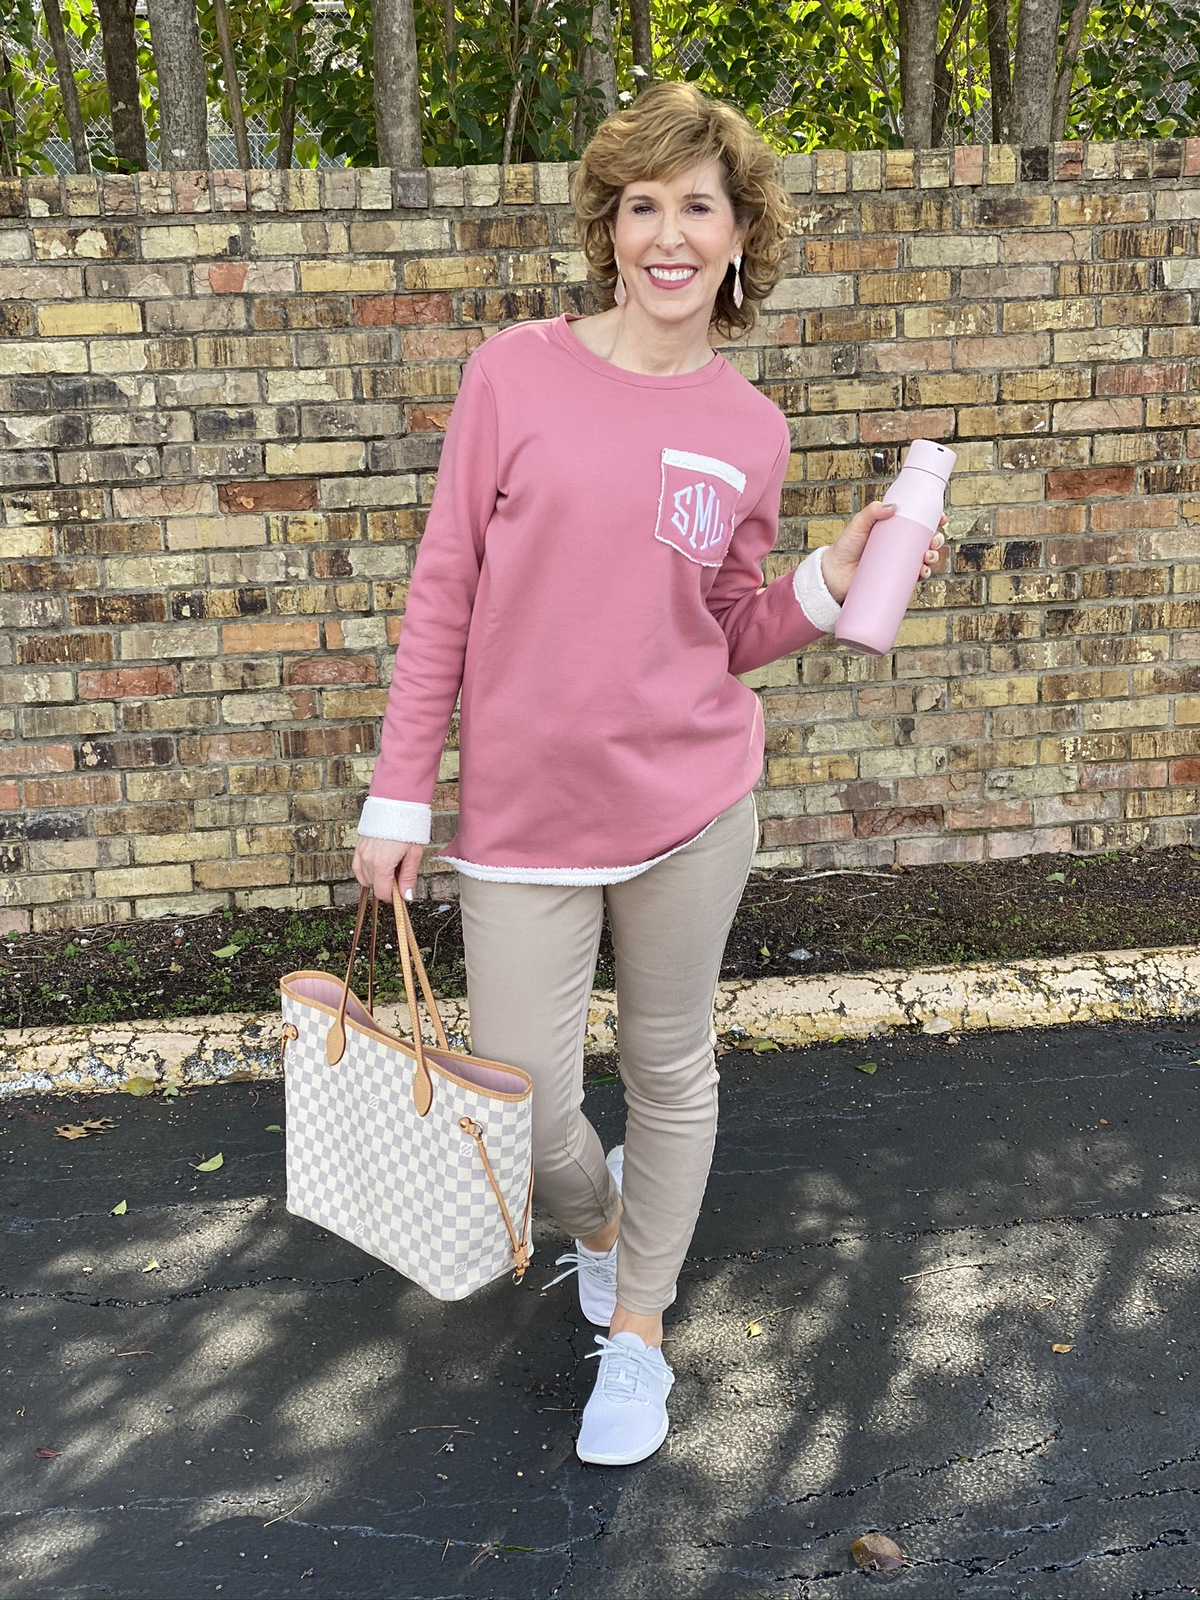 woman in pink monogrammed sweatshirt holding a pink reusable water bottle to help with hydration and immuity standing in front of a brick wall